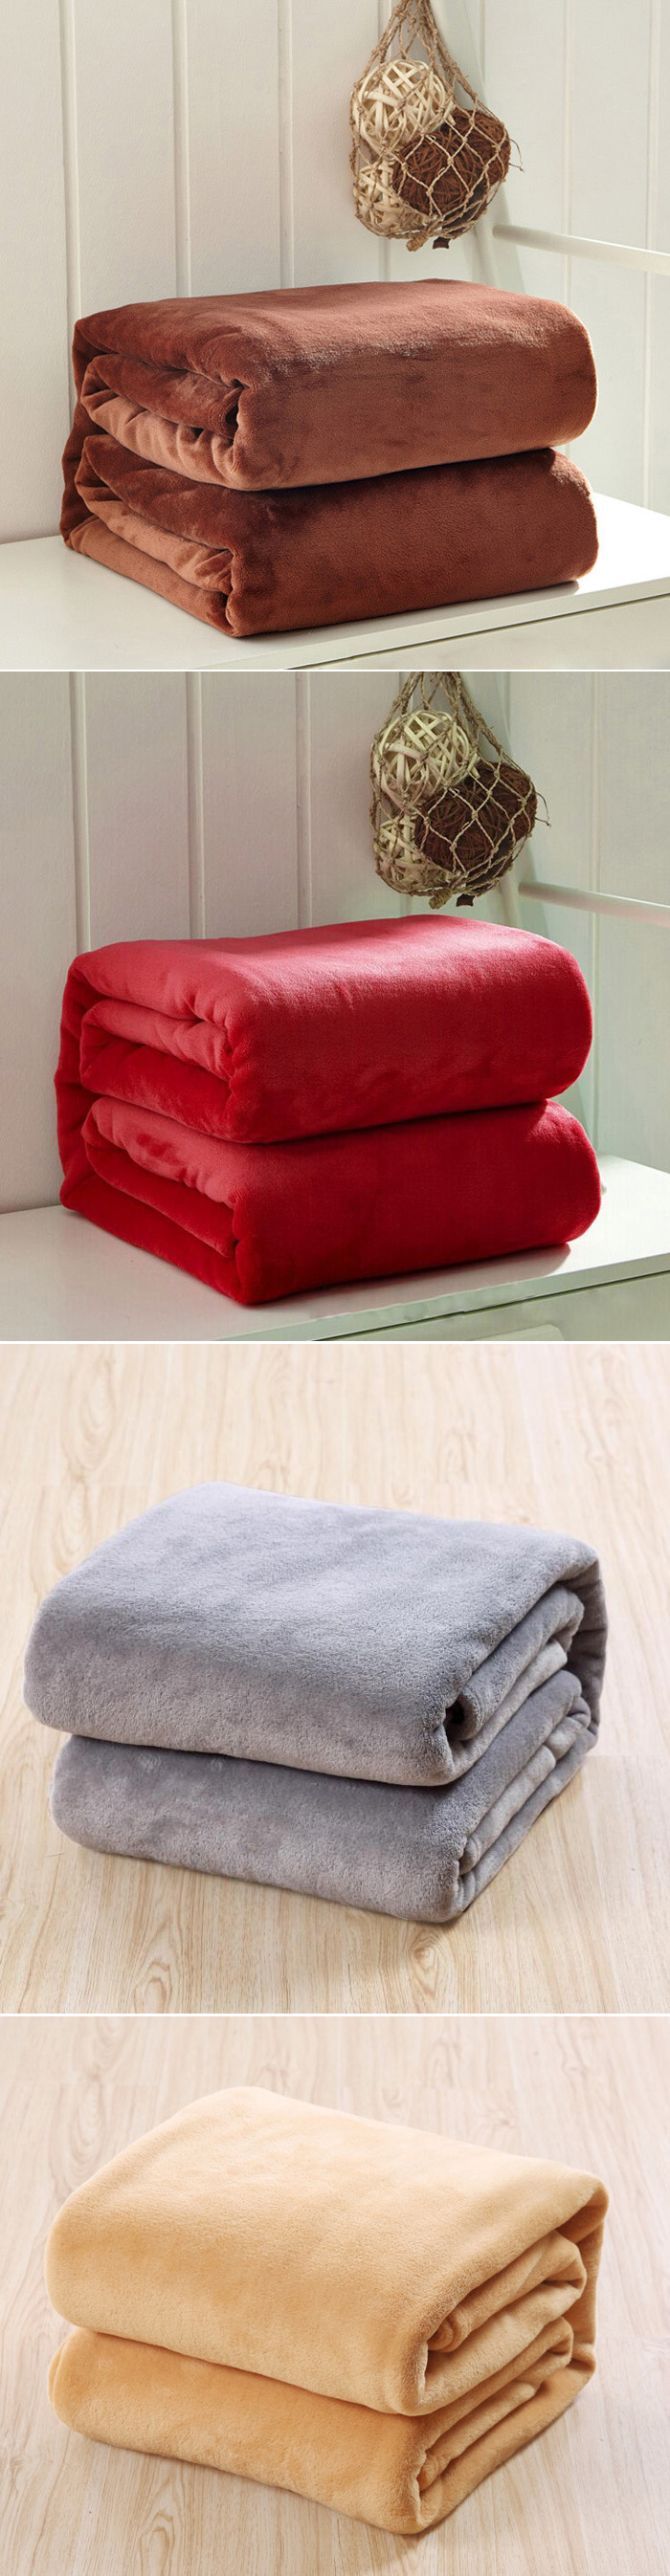 100x150cm Coral Fleece Blanket Sofa Bed Bedding Warm Soft Quilt